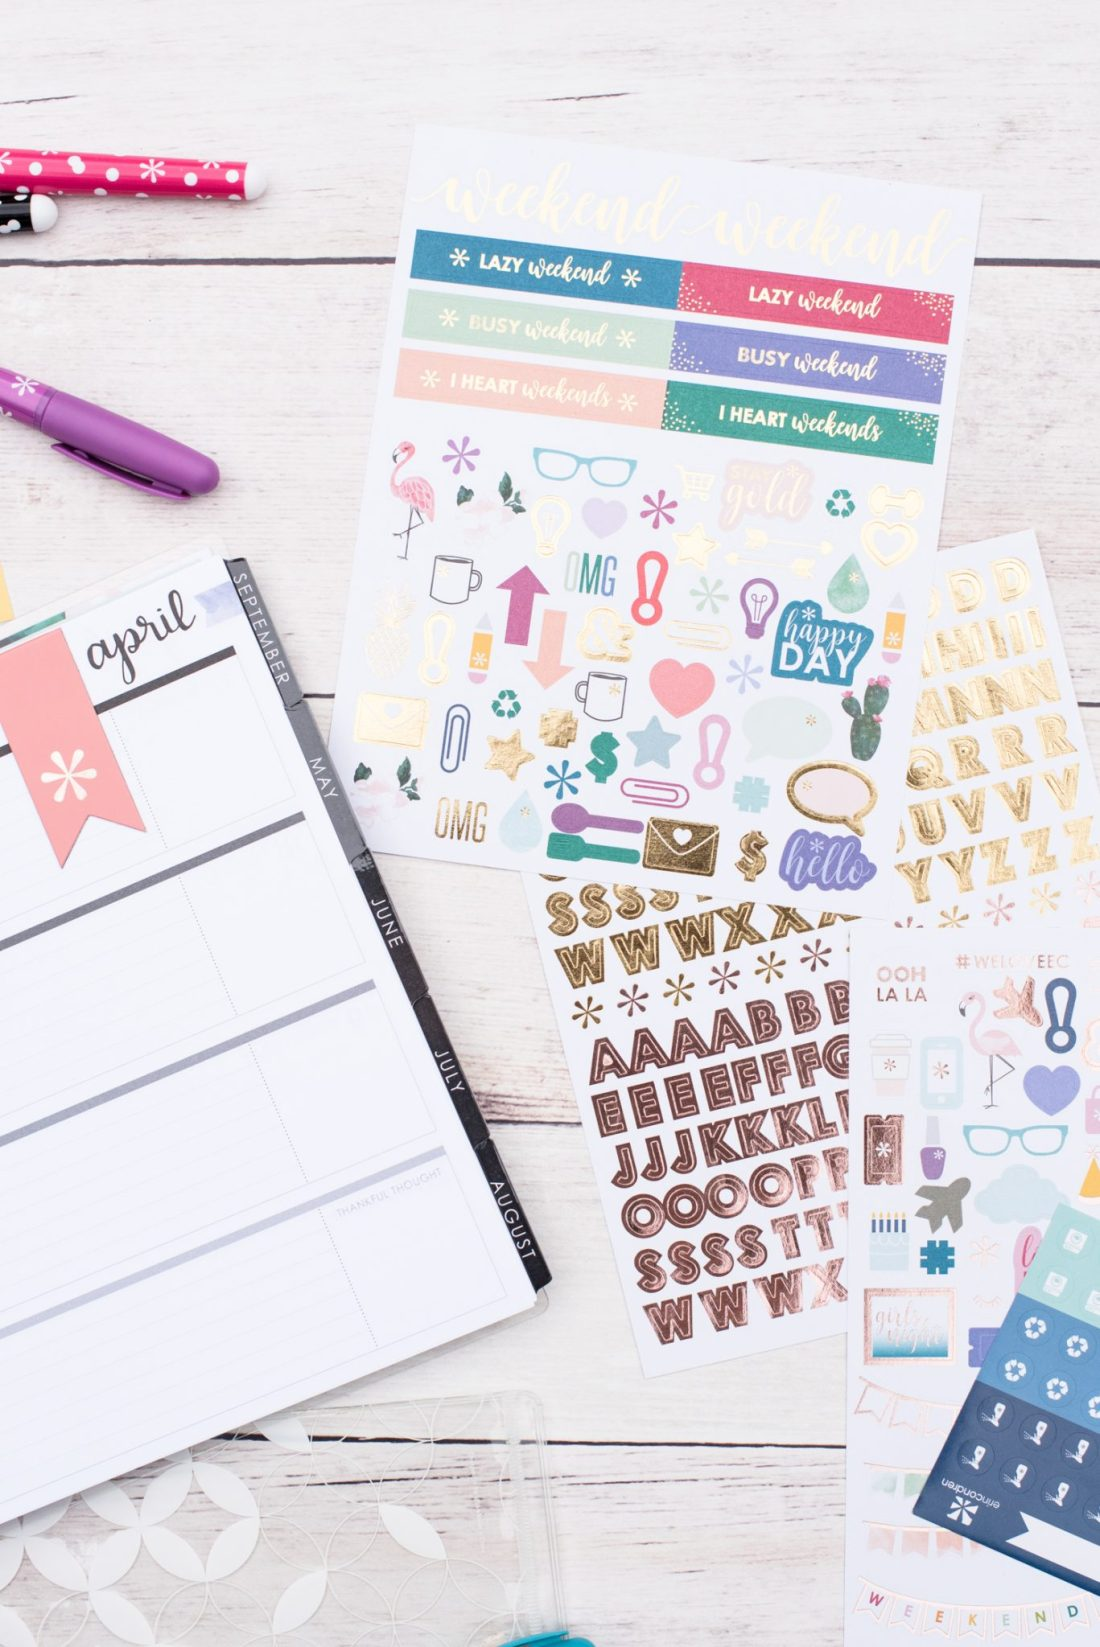 Getting Organized with the Erin Condren Life Planner via @missmollymoon